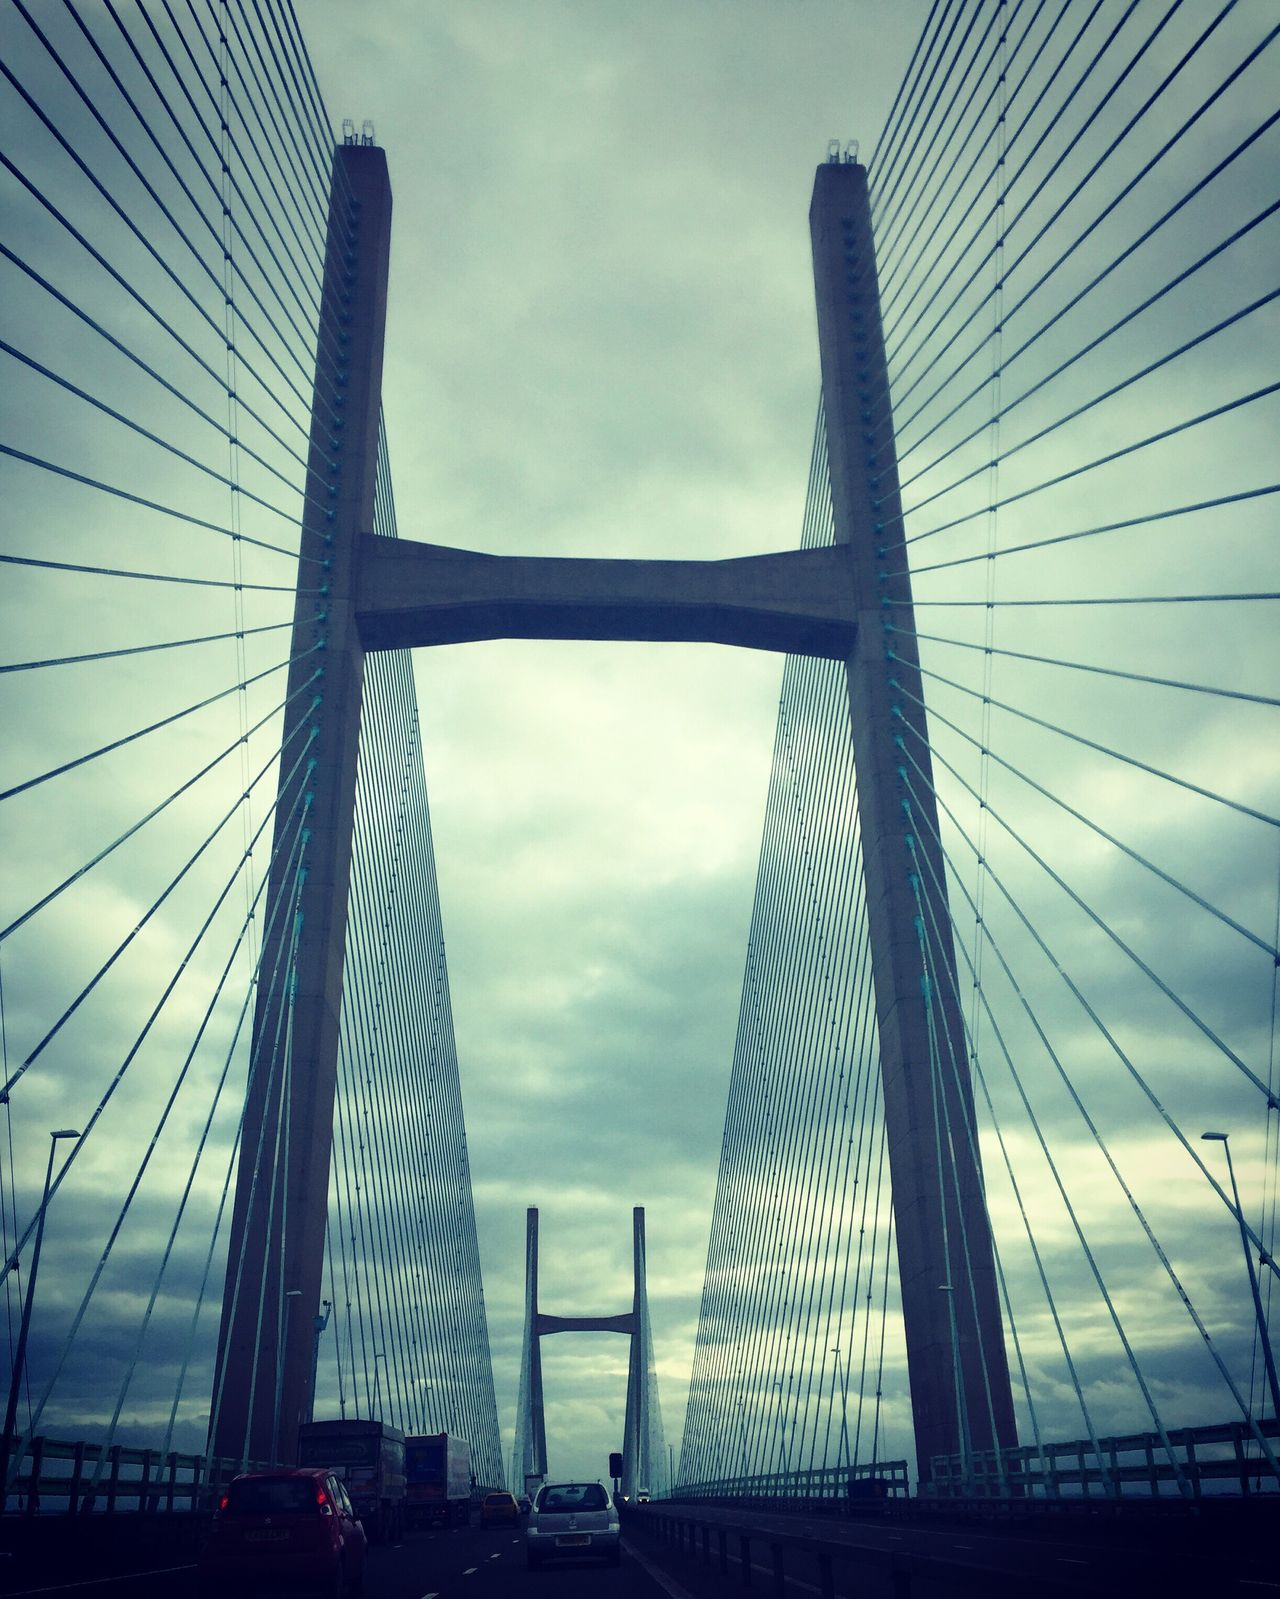 Second Severn Crossing Engineering Bridge Wales England River River Severn United Kingdom Road